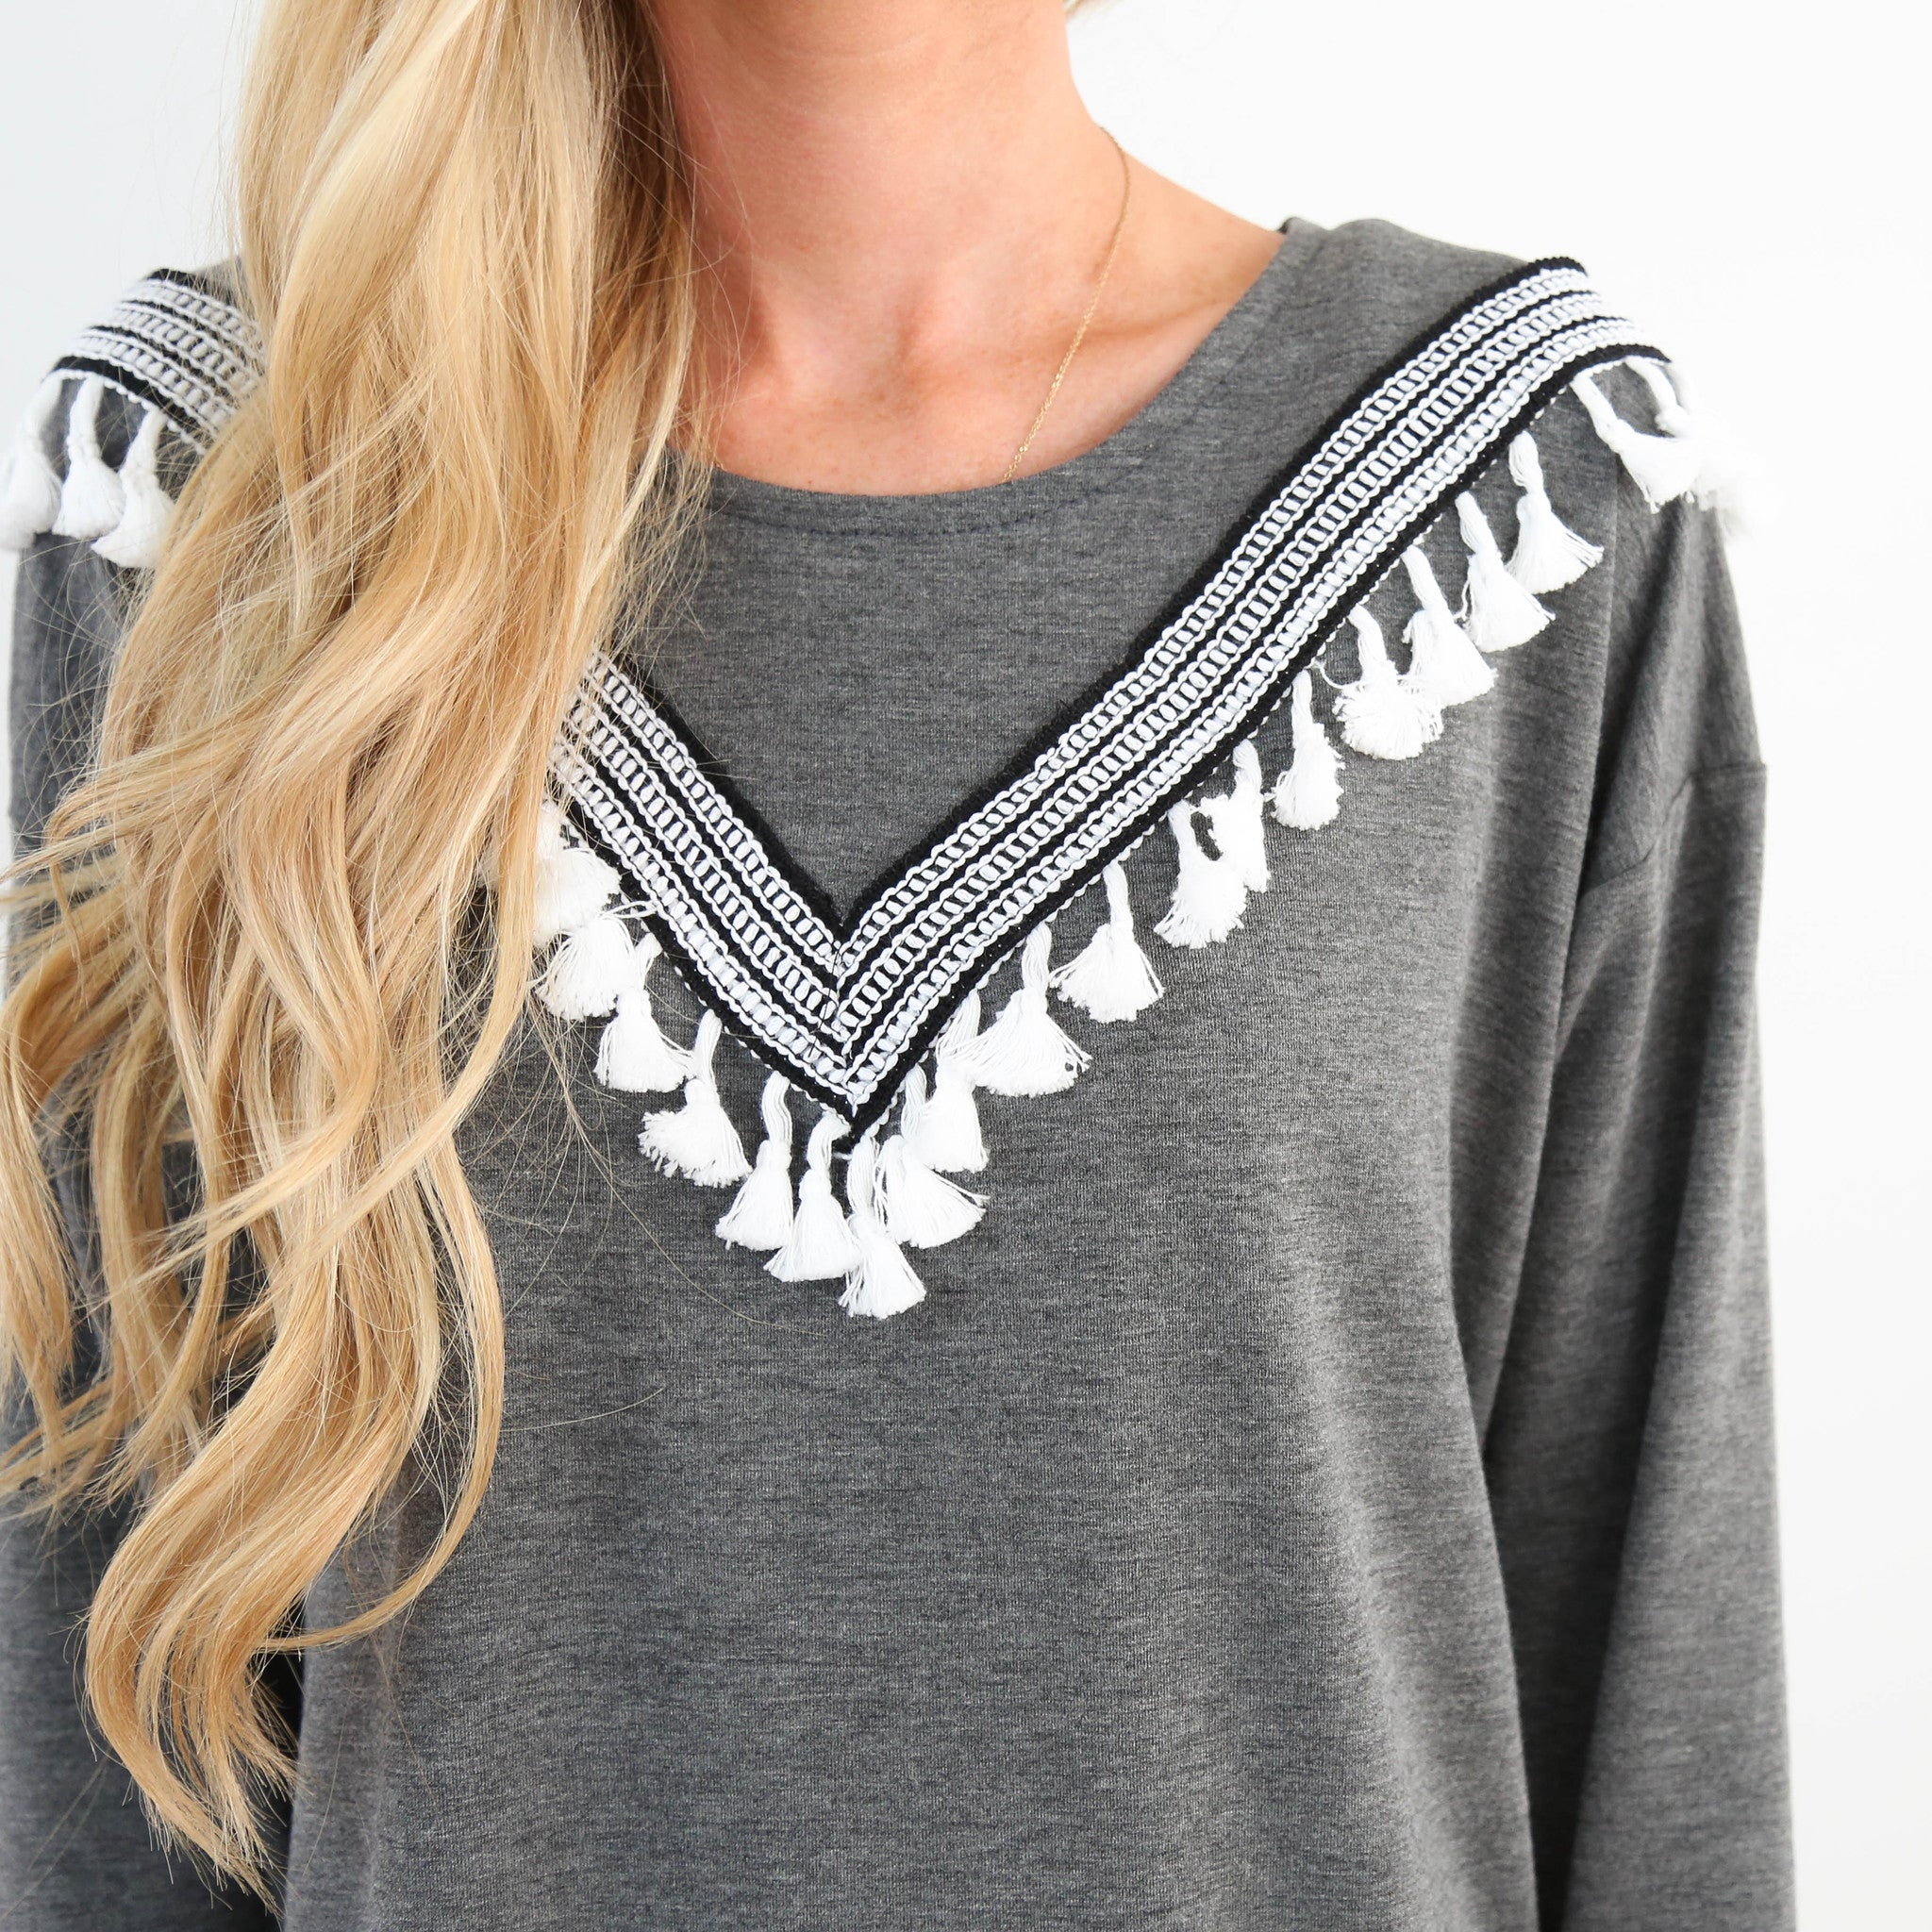 Tayva Embroidered Tassle Top